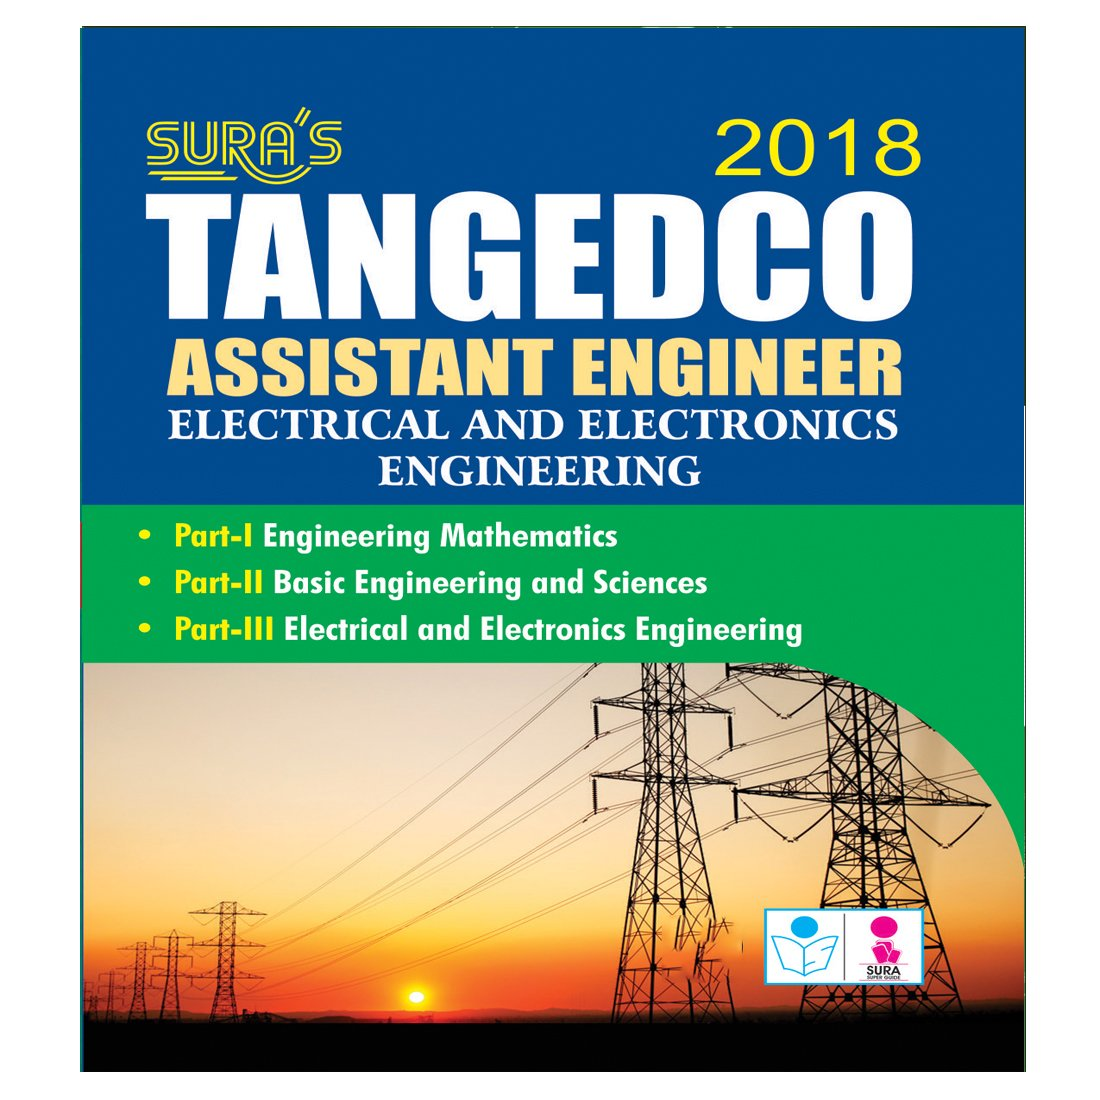 Buy Tneb Tangedco Assistant Engineer Electrical And Electronics Electric Circuit App For Windows In The Store Engineering Exam Book Online At Low Prices India